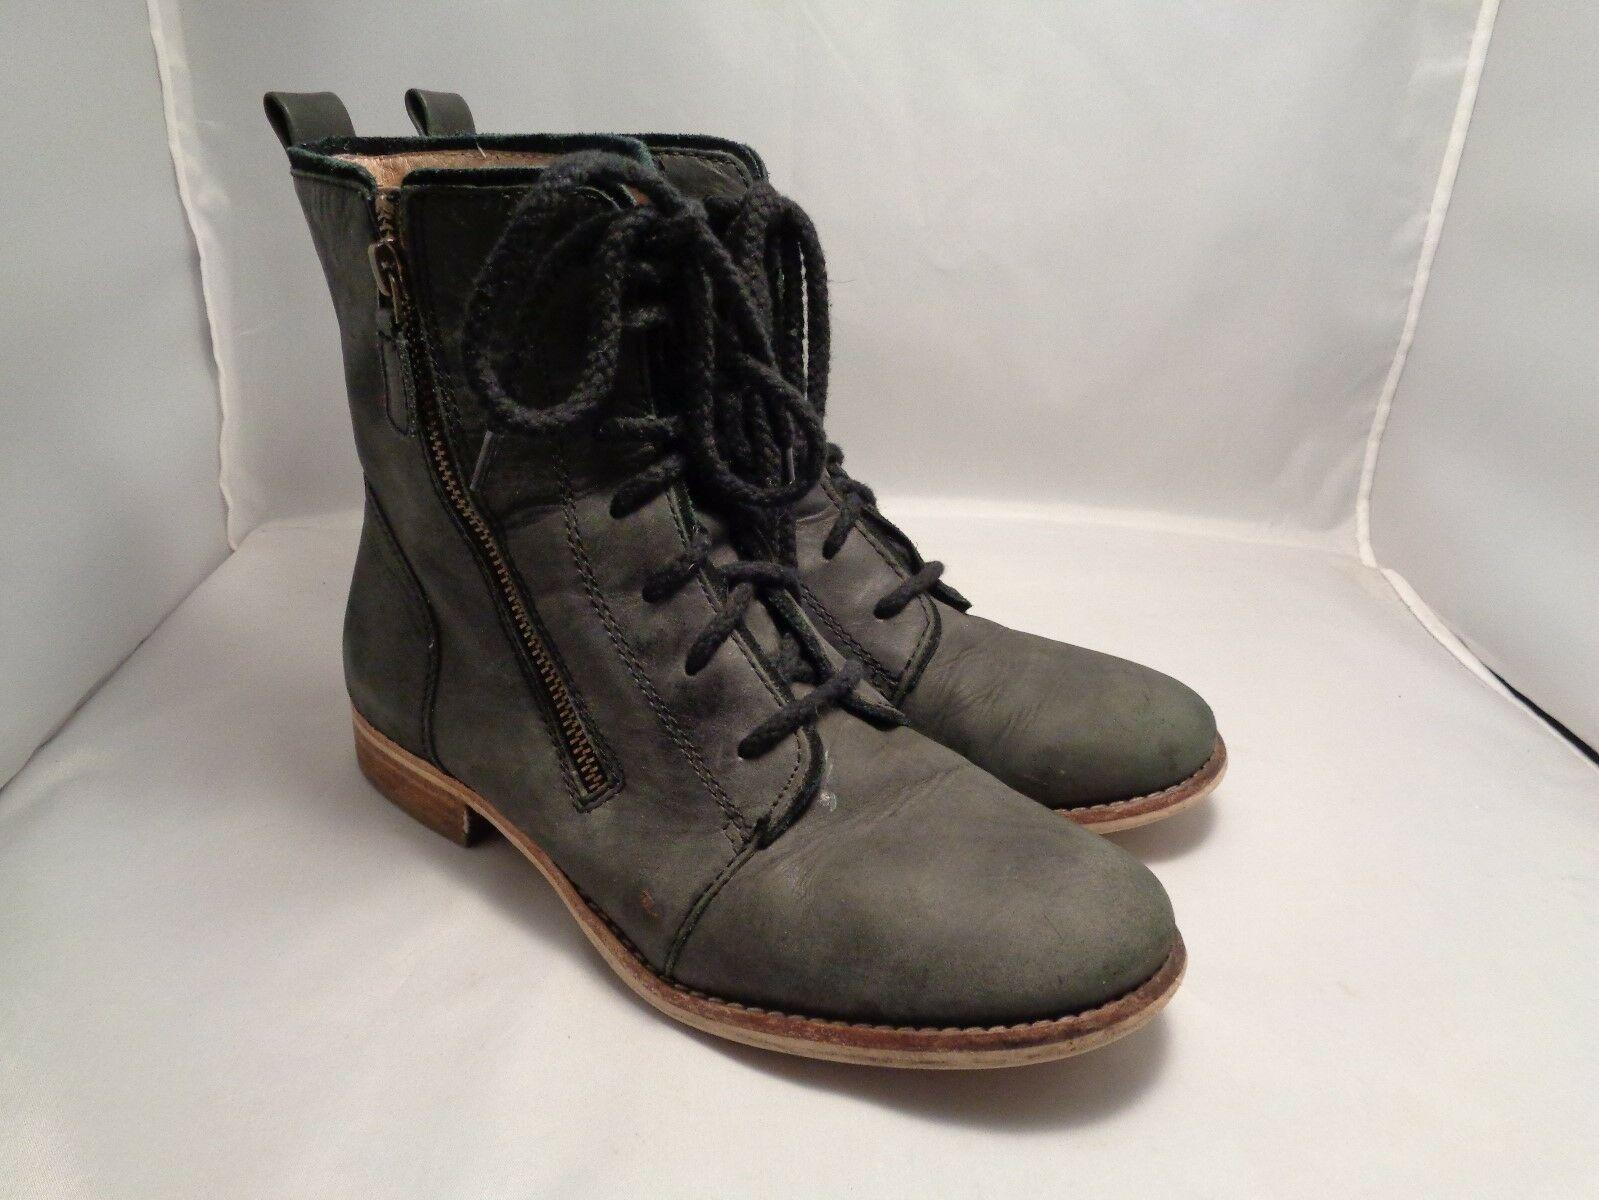 Lands' End Womens Boots Size 7 1/2B